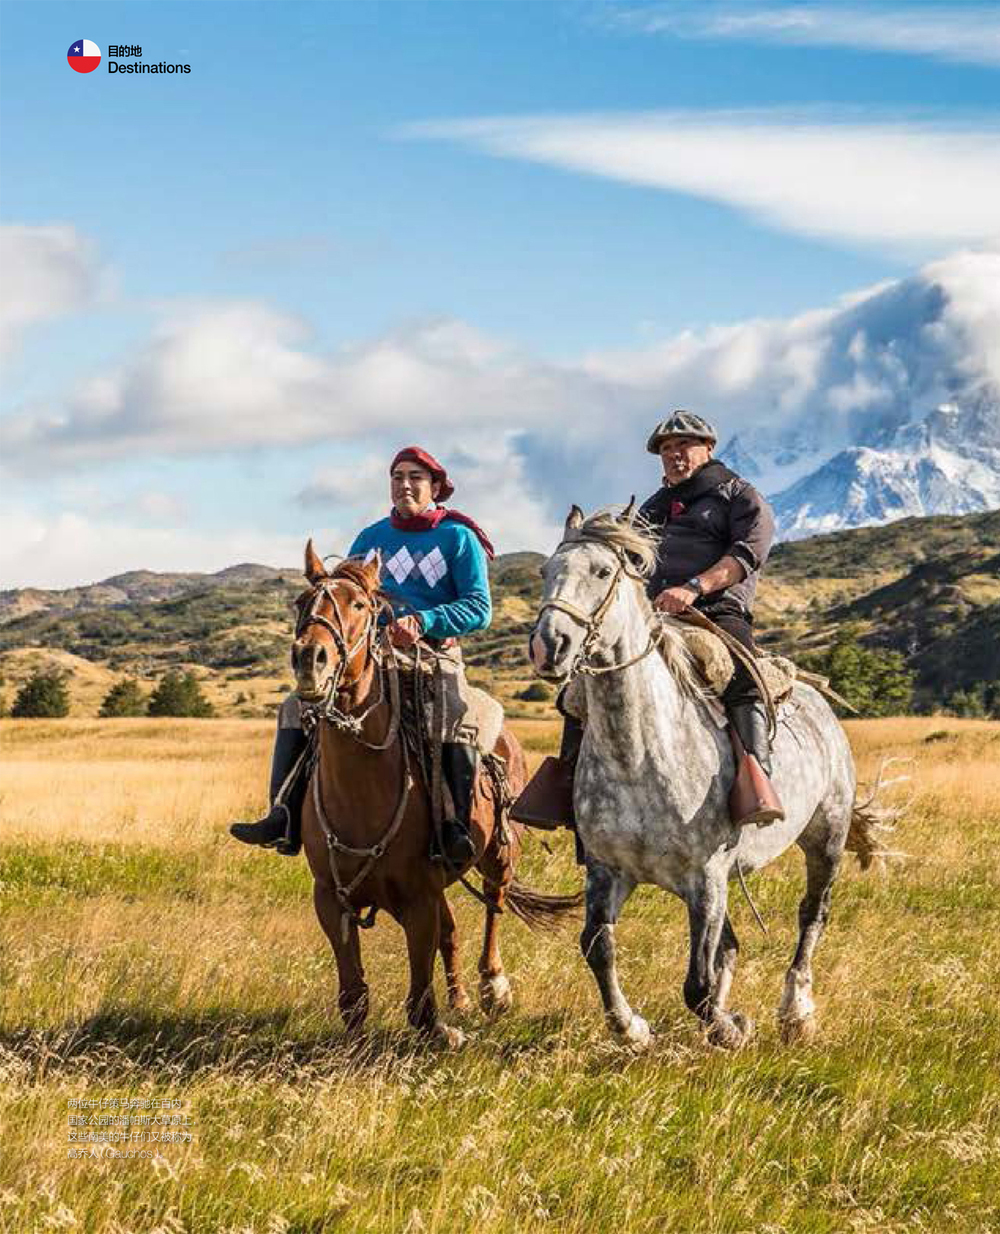 TO THE END OF THE WORLD      Conde Nast Traveler China   I braved the unknown on a solo trip to Chilean Patagonia, where I met up with the amazing photographer, Julien Capmeil.  We went on treacherous hikes and rollicked horseback in the most epic landscape in the world.